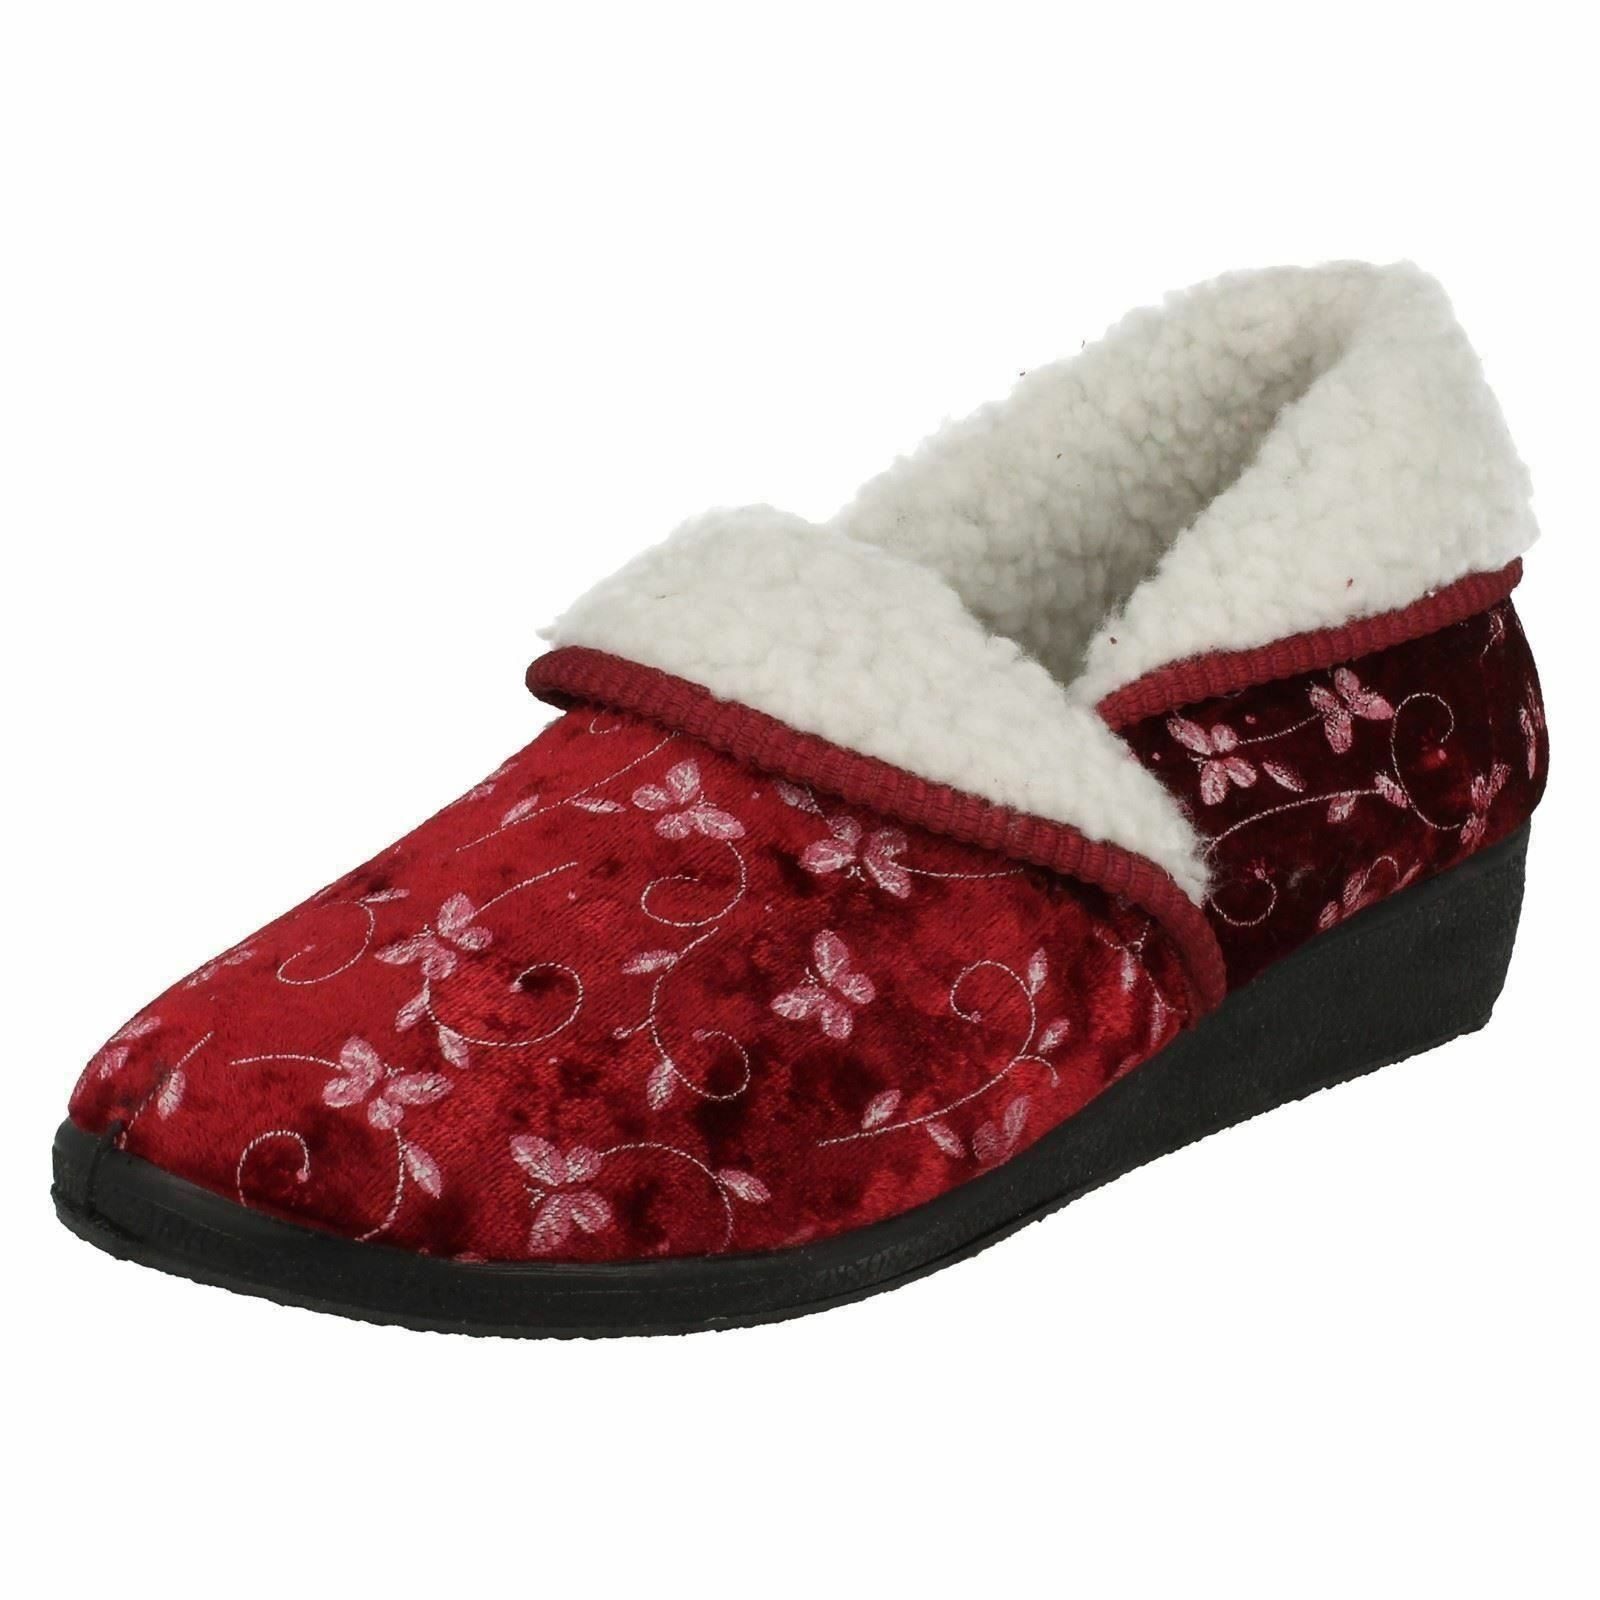 Four Floral Seasons 'Edith' Ladies Burgundy Floral Four Warm Comfortable Slippers e3b979